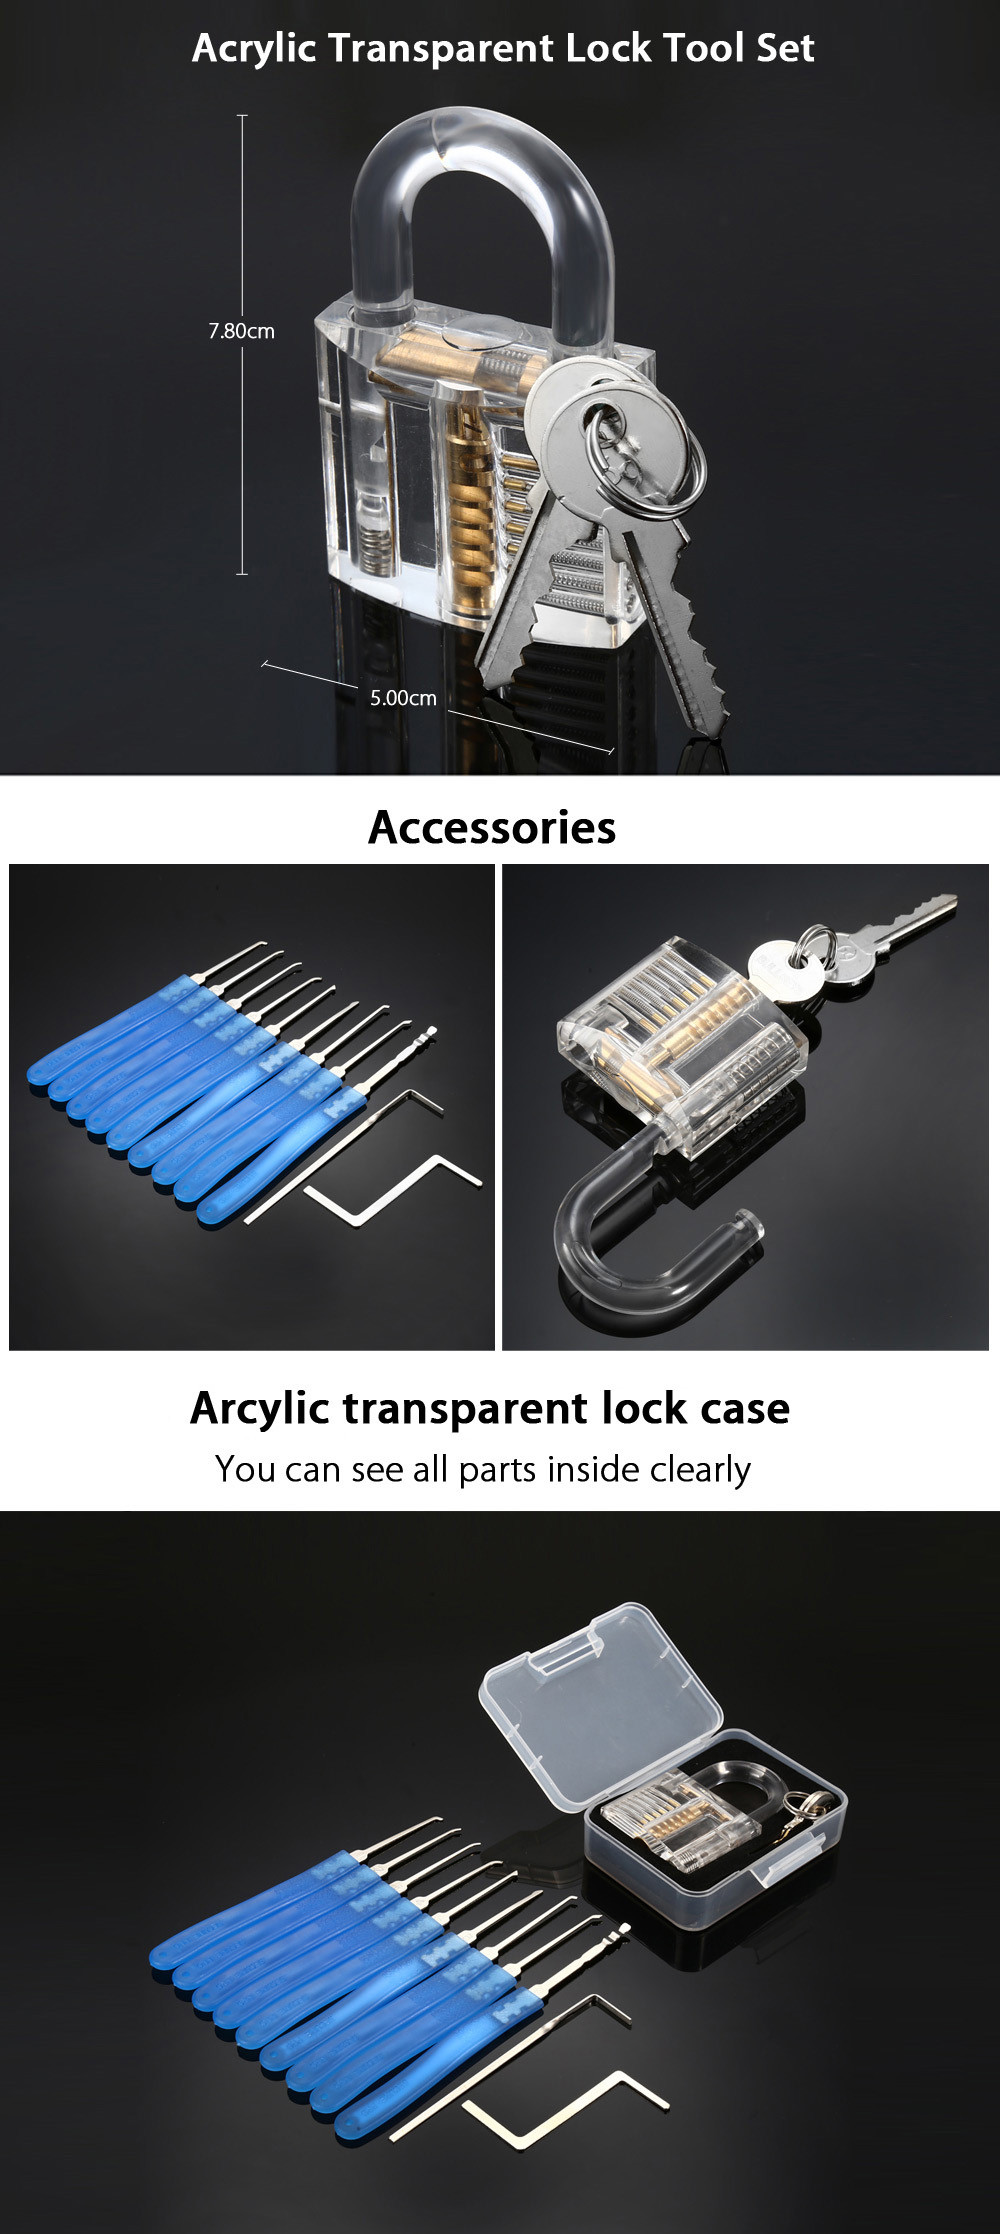 Acrylic Transparent Lock Tool Set